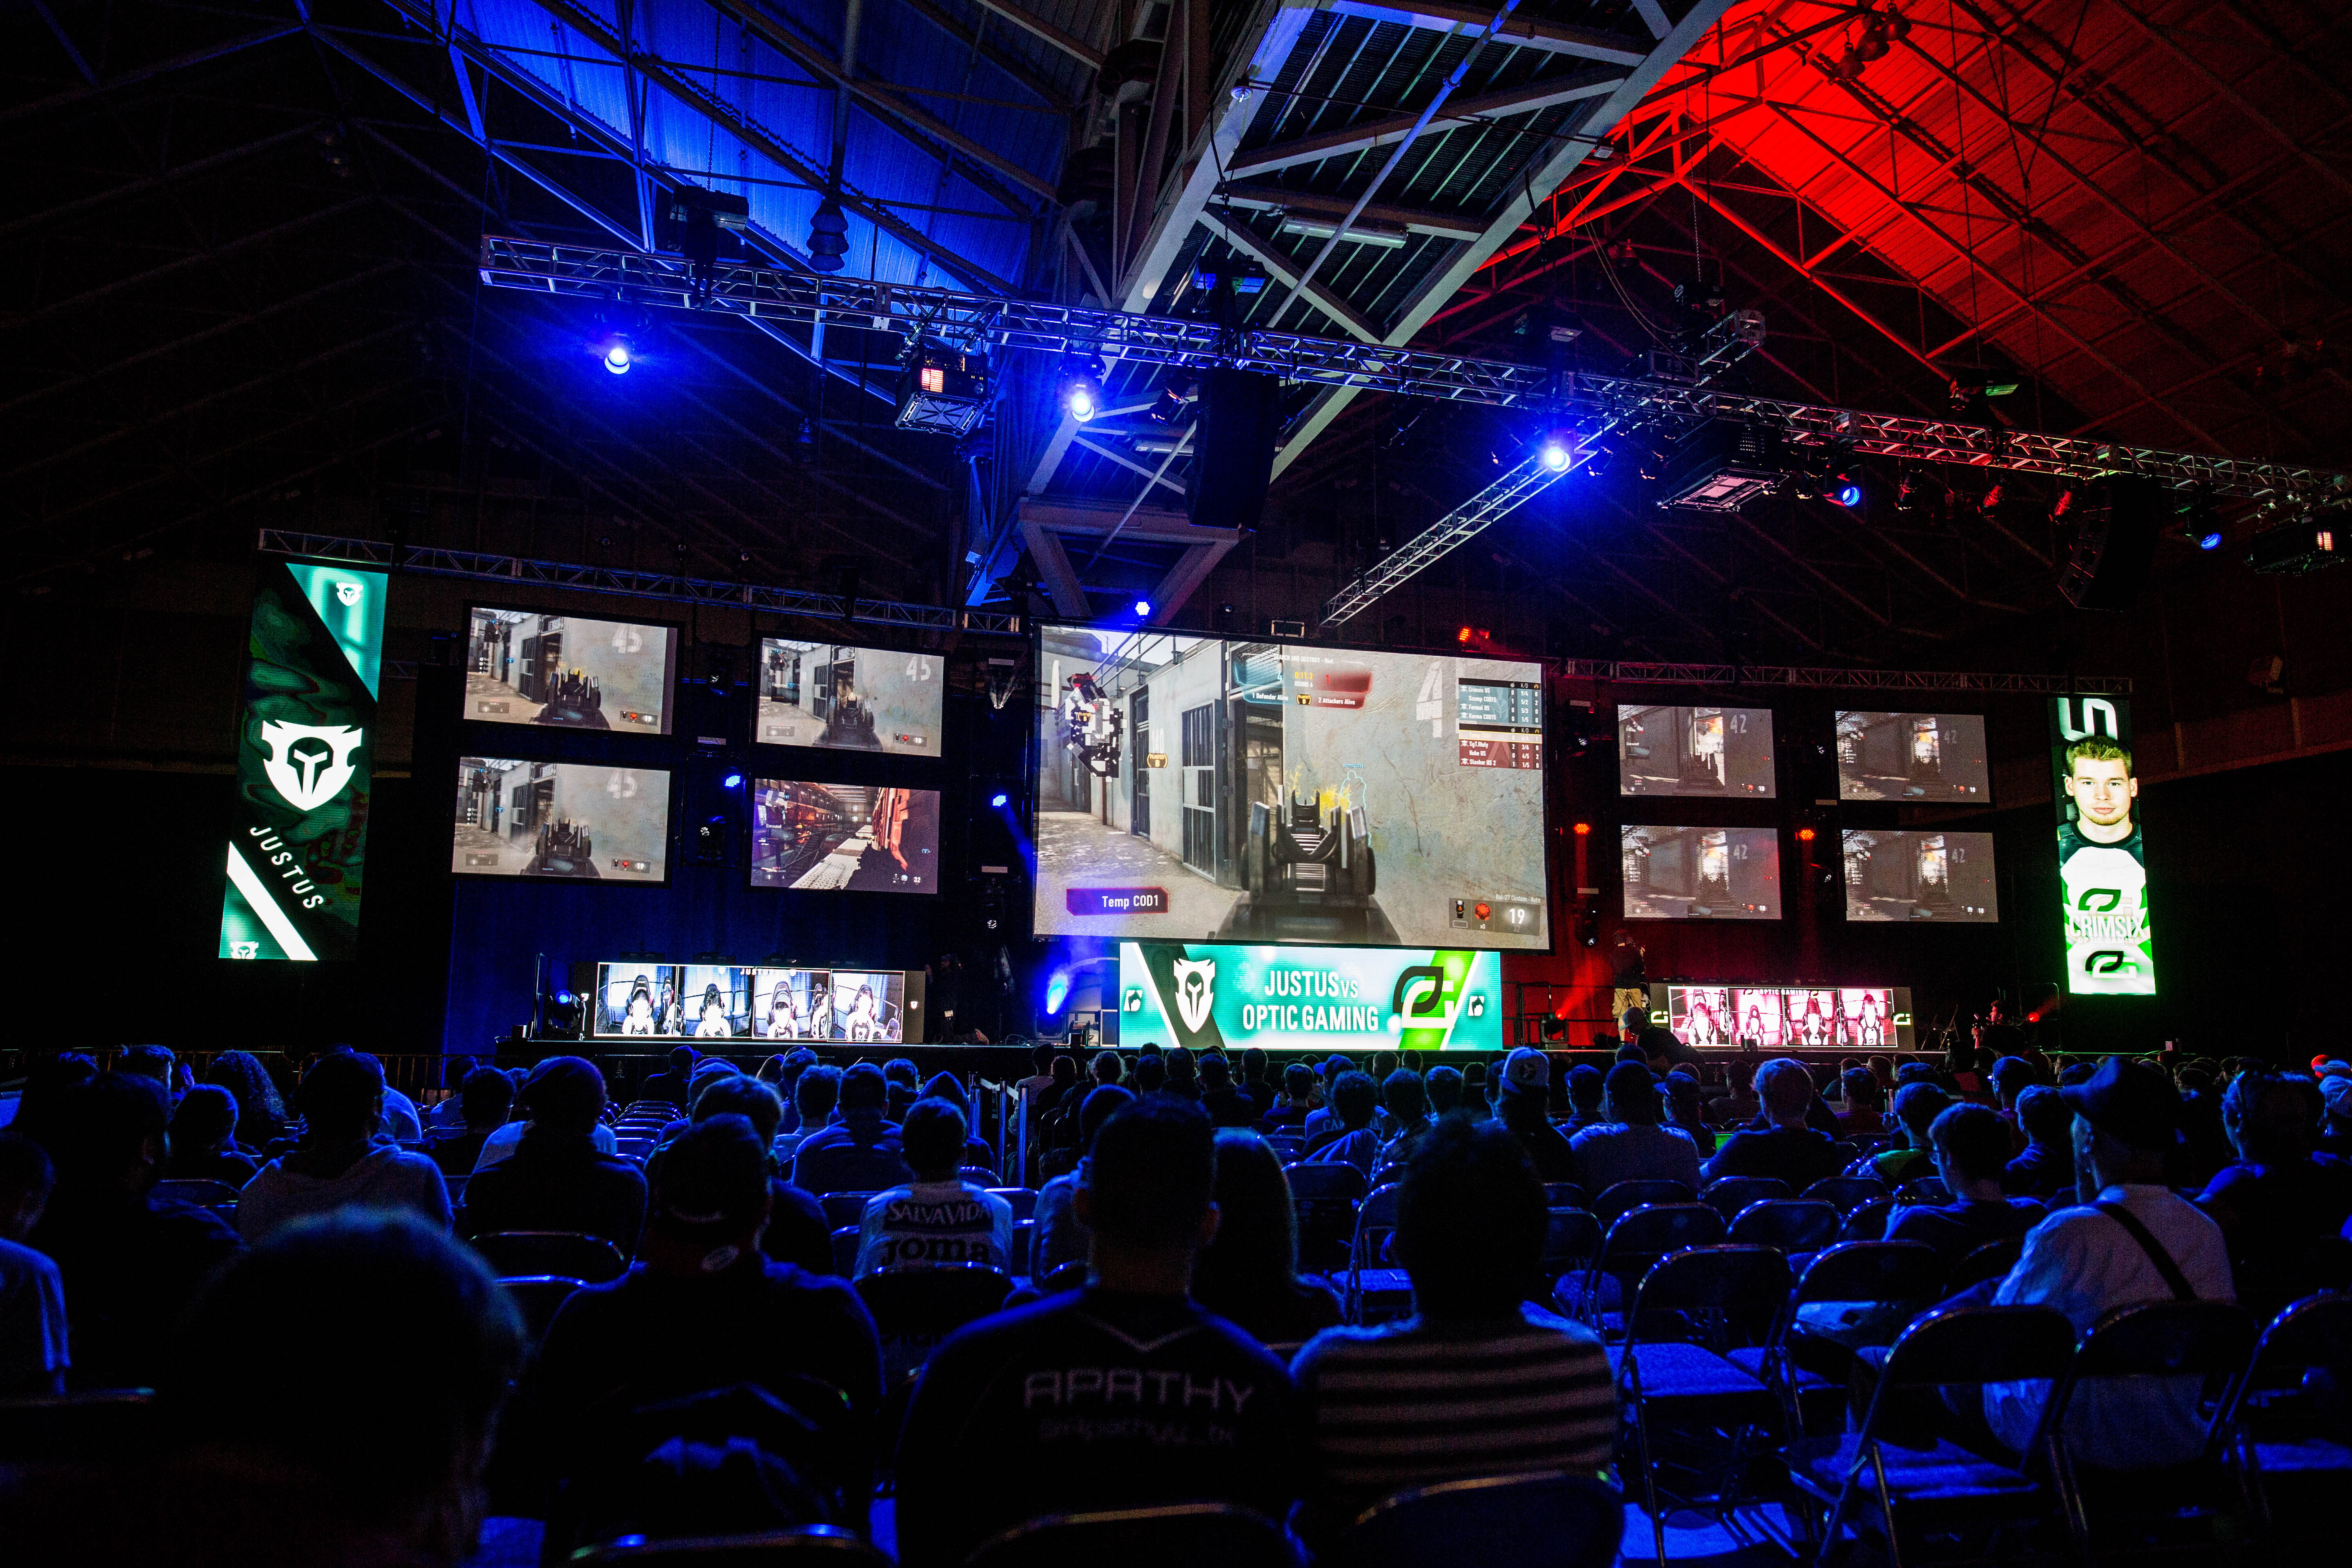 Major League Gaming's 100th event was held in New Orleans, where top Dota 2, Call of Duty, and Super Smash Bros. teams competed.